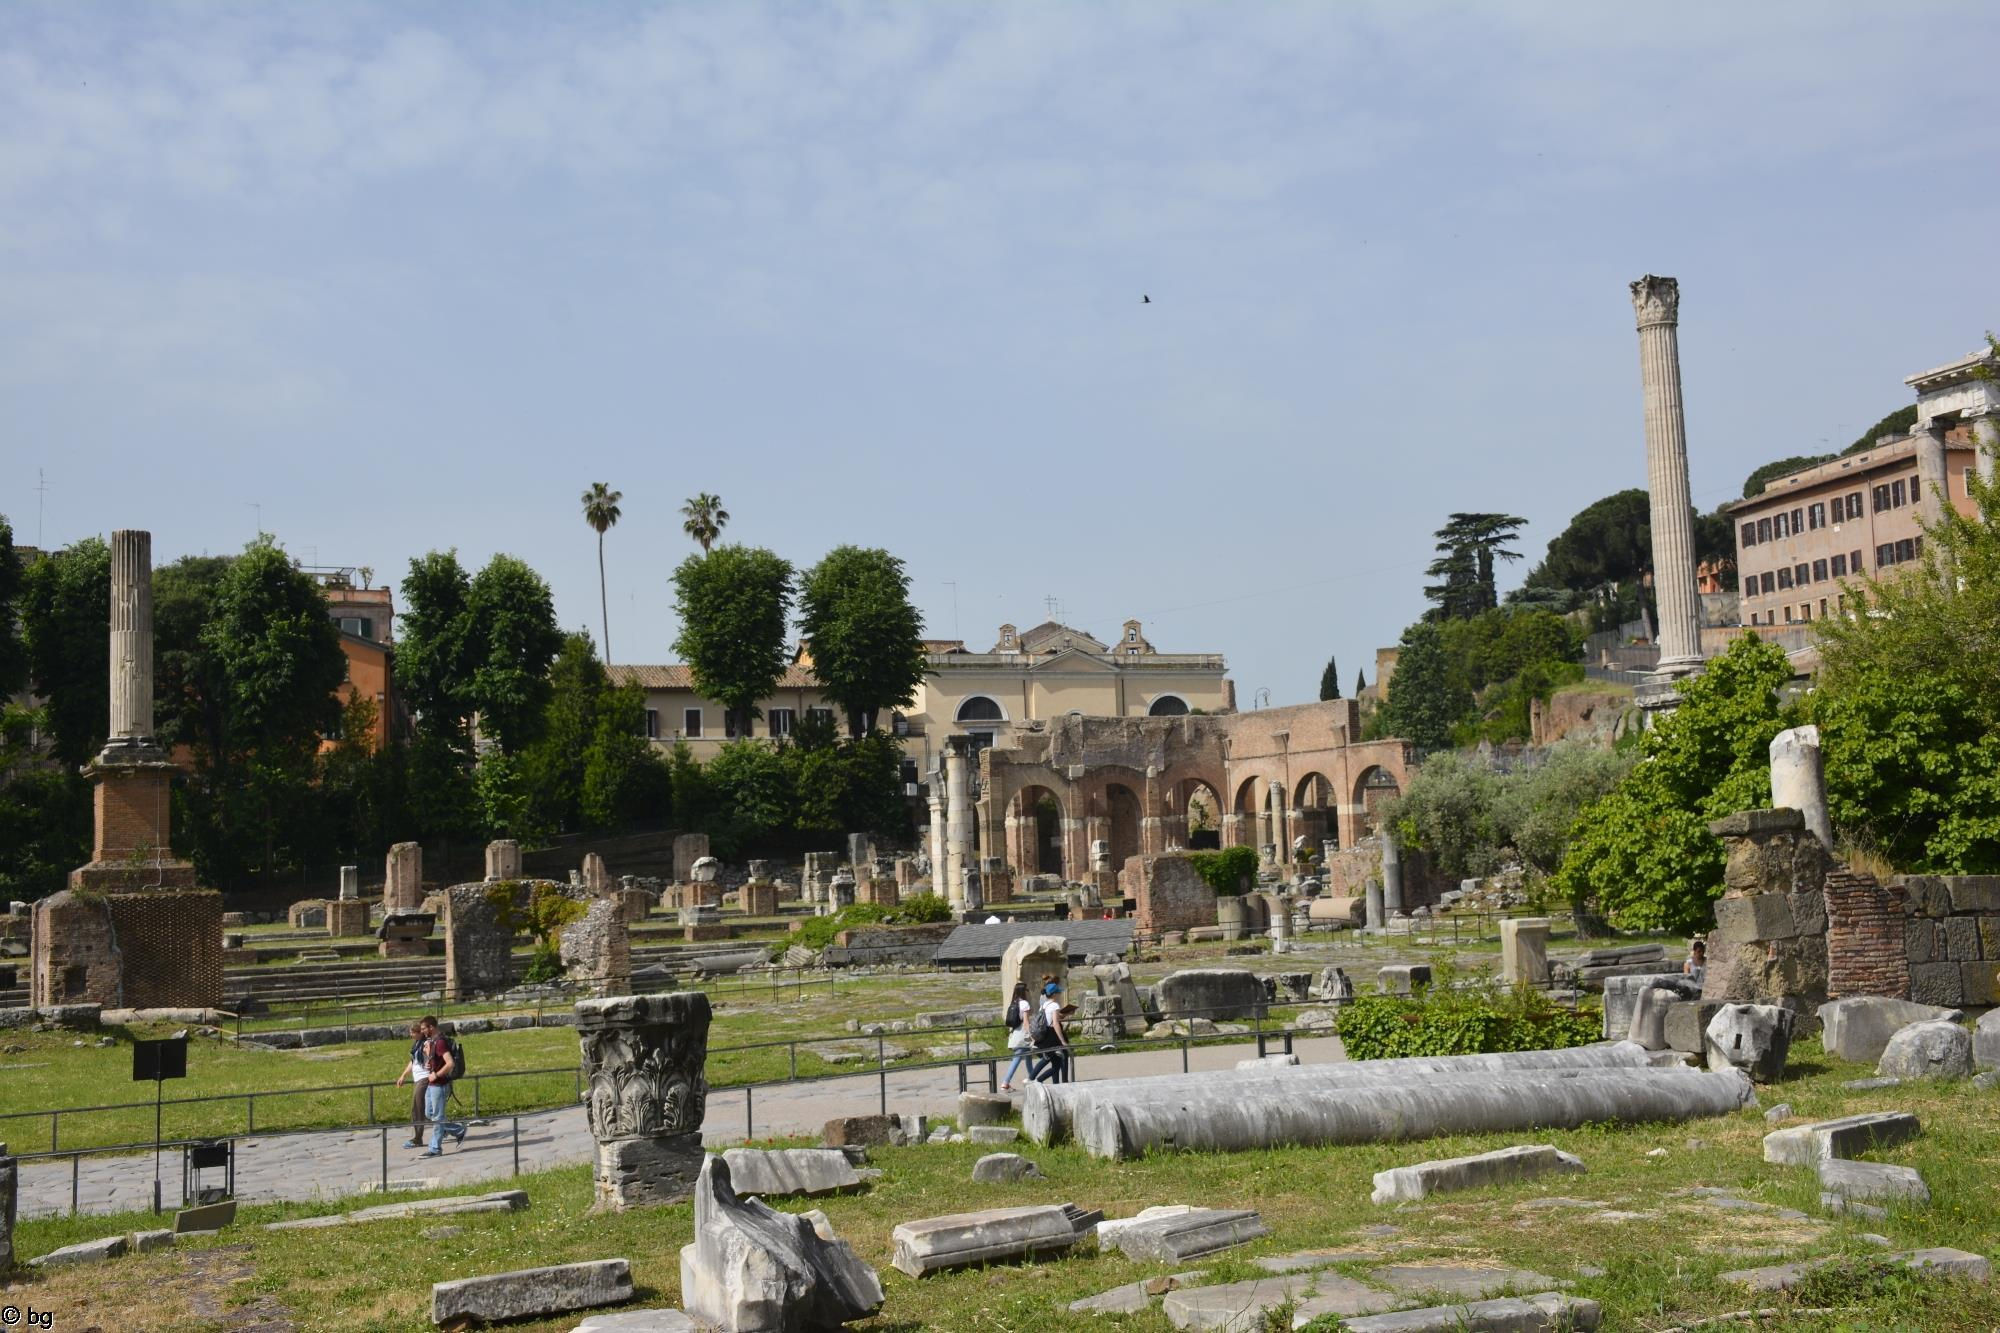 visiter-rome-photos-du-forum-romain_1